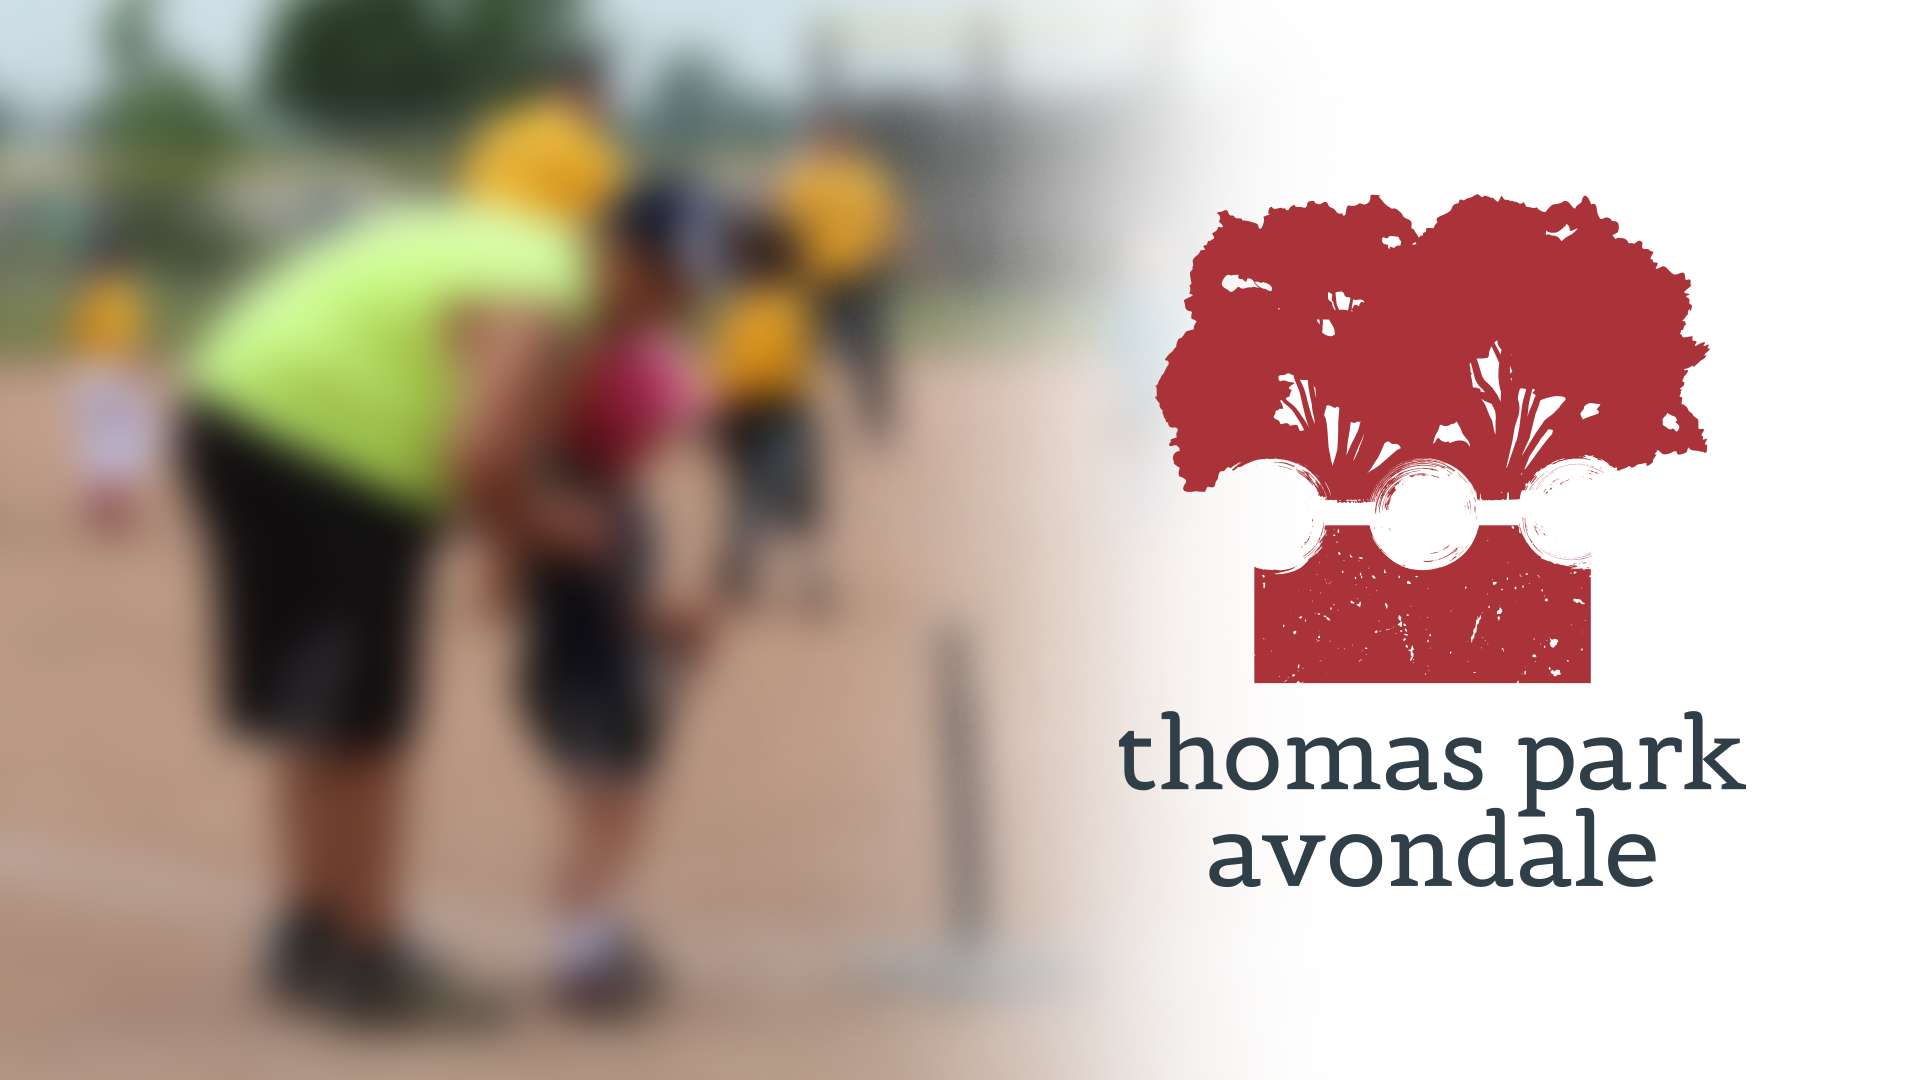 The Thomas Park Avondale logo, made up of trees, three dots, and part of a gear shape; all overlaid over a photo of kids teeball from the neighborhood.